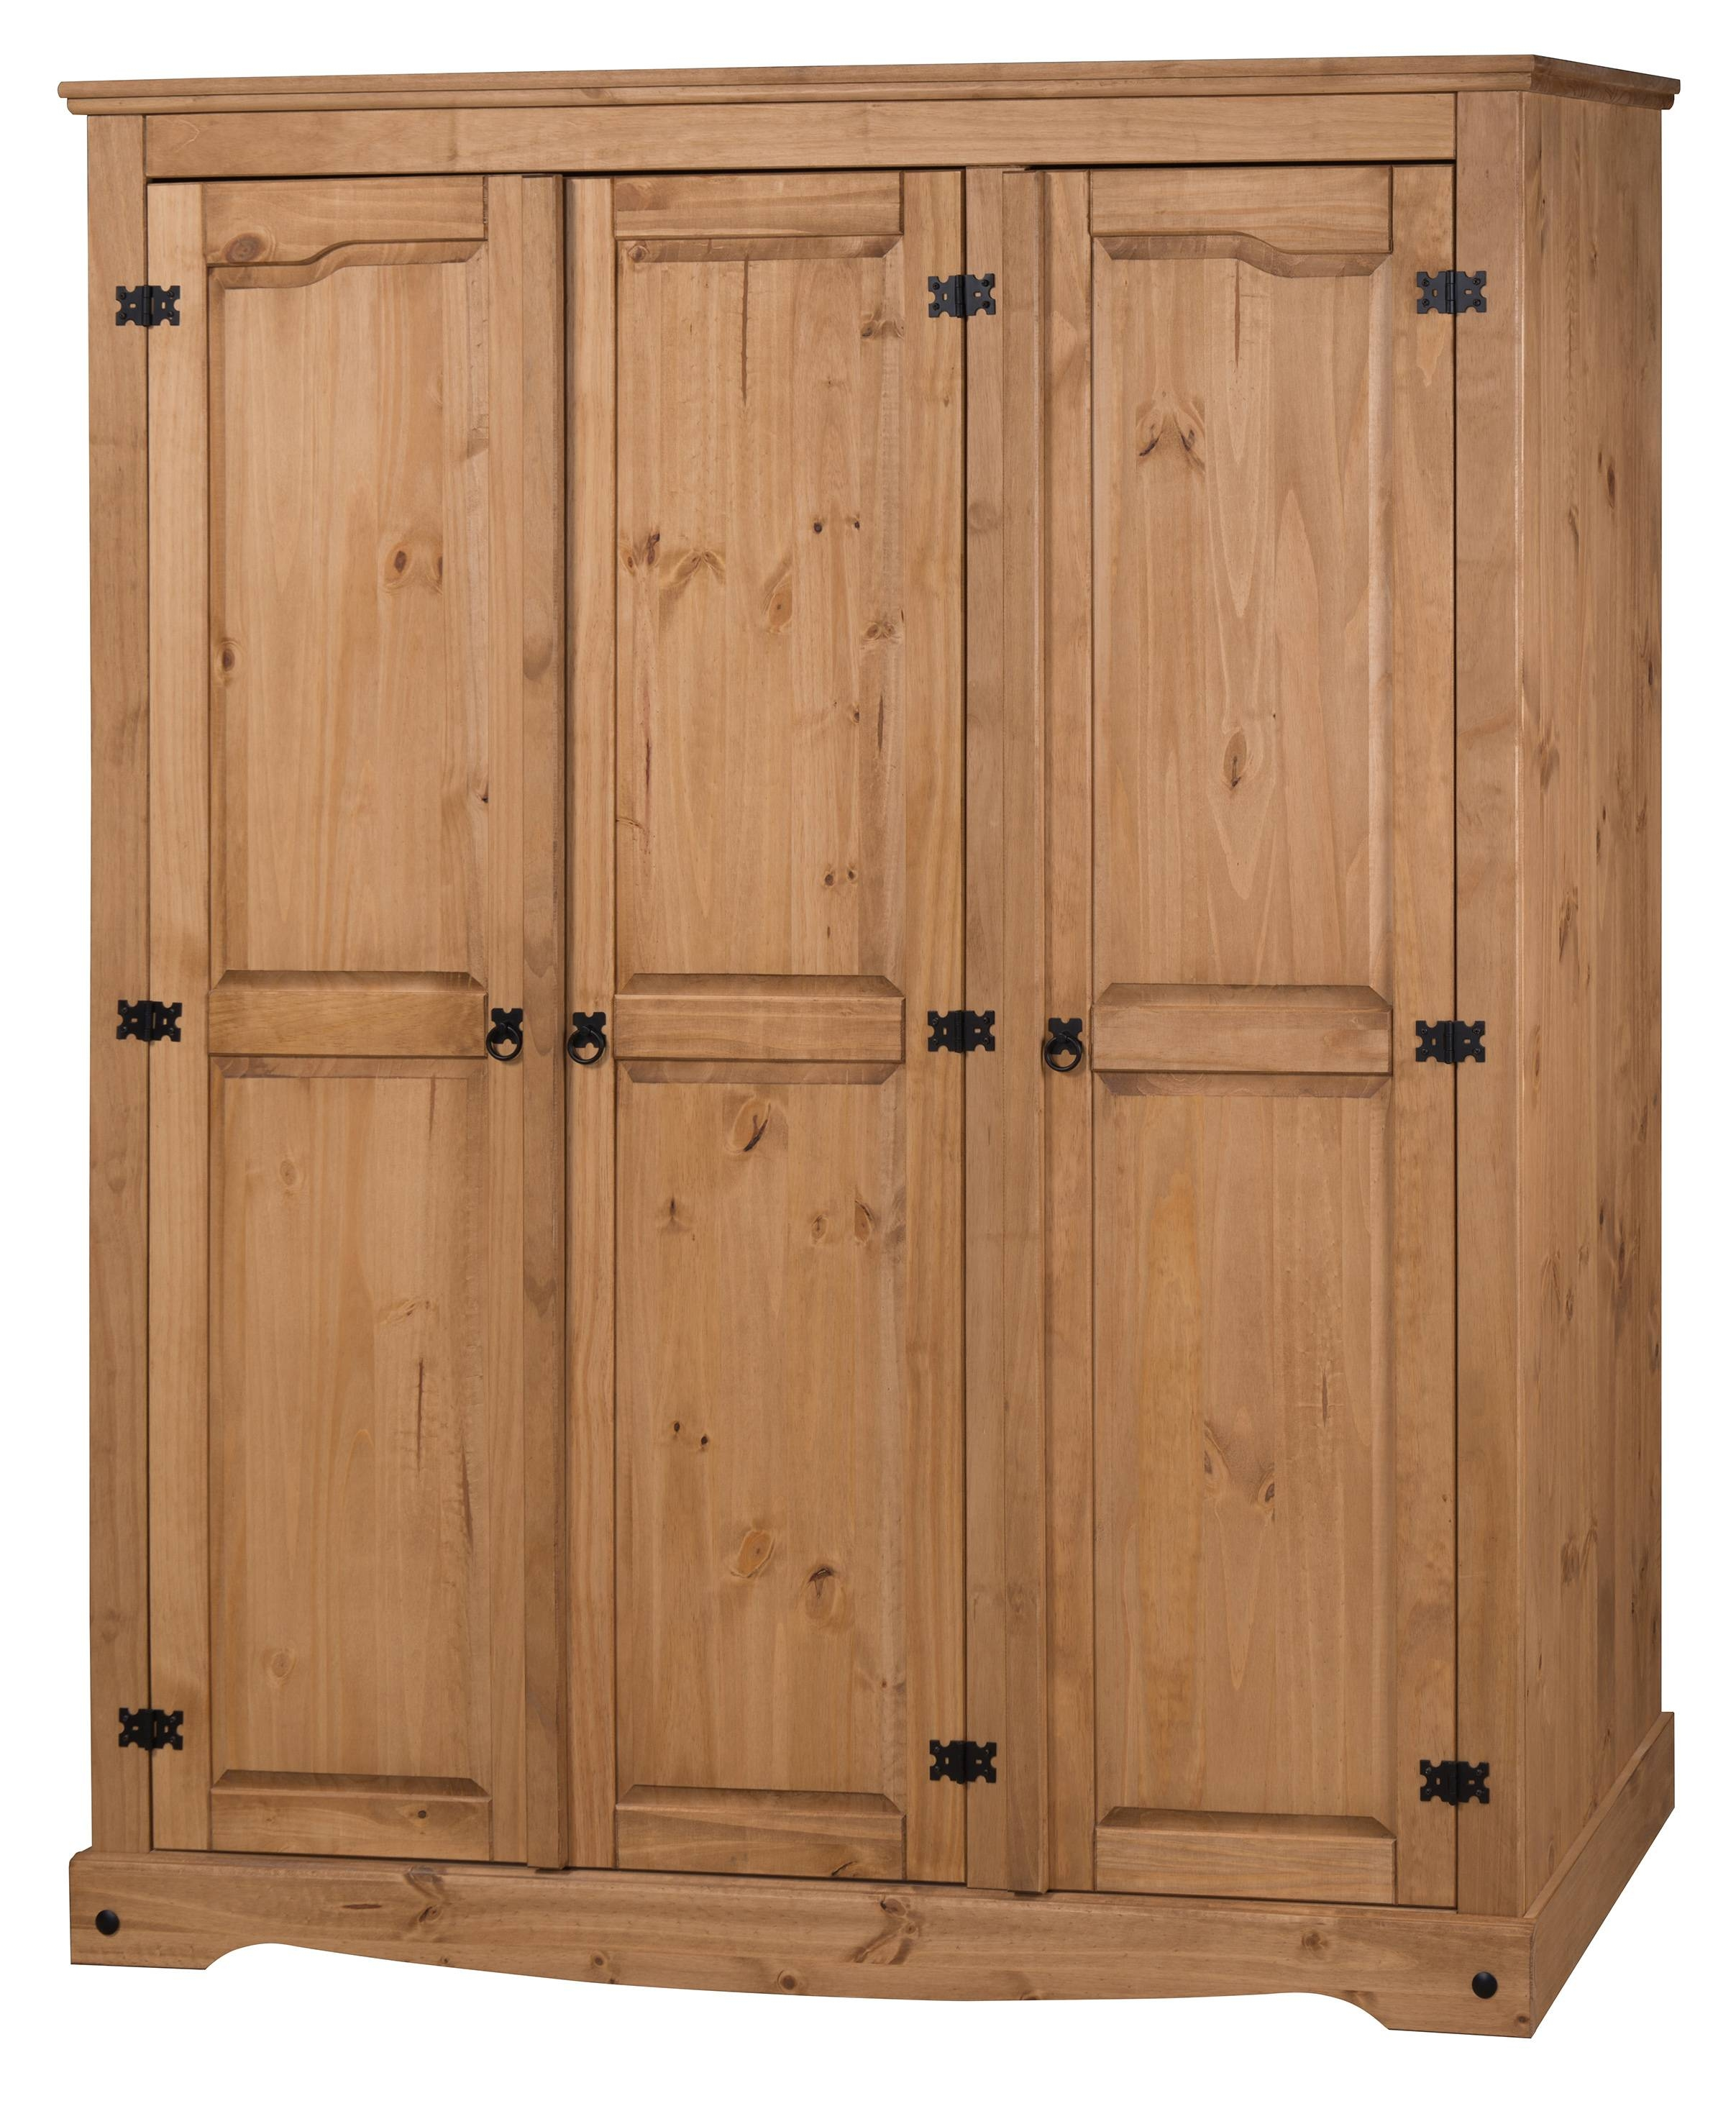 Corona 3 Door Flat Top Wardrobe intended for Corona Wardrobes With 3 Doors (Image 6 of 15)